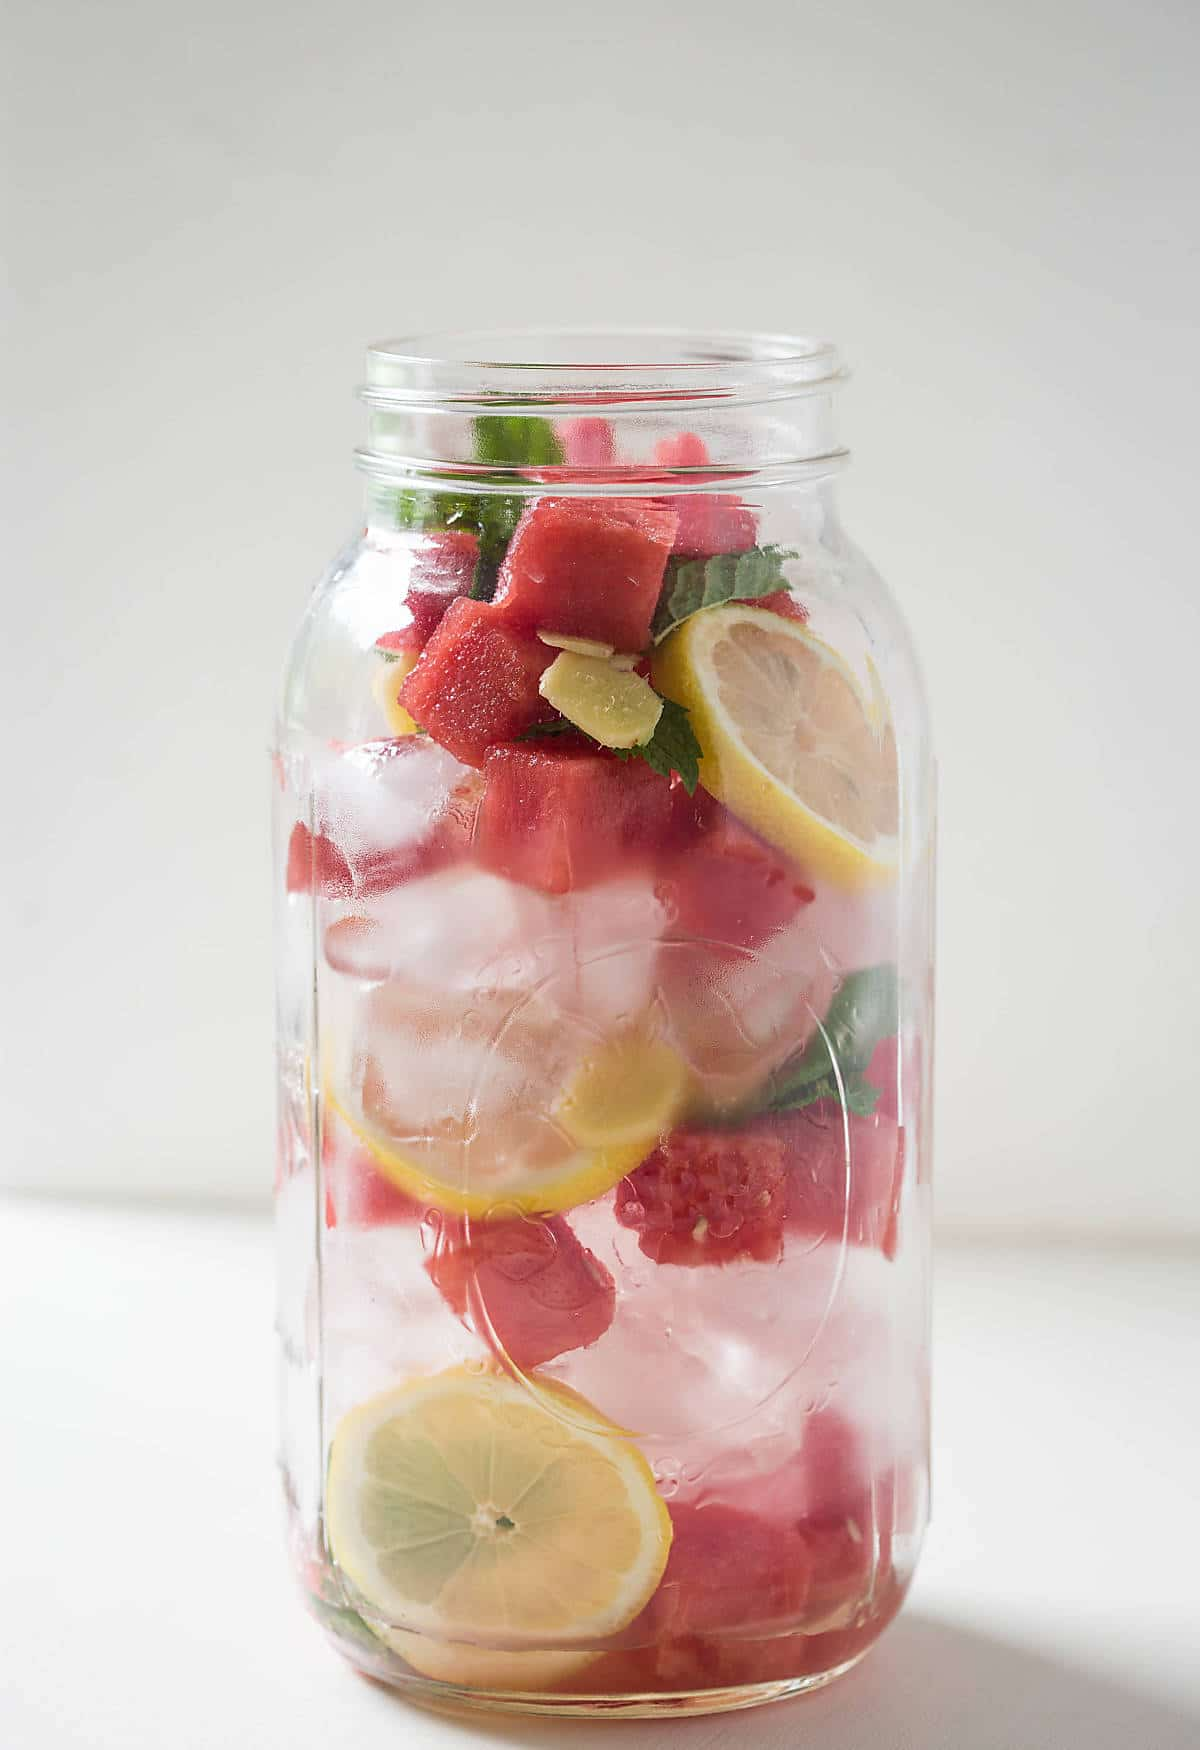 Stay hydrated with this refreshing fresh watermelon detox water. Contains all the goodness from fresh watermelon, mint, ginger, and lemon.